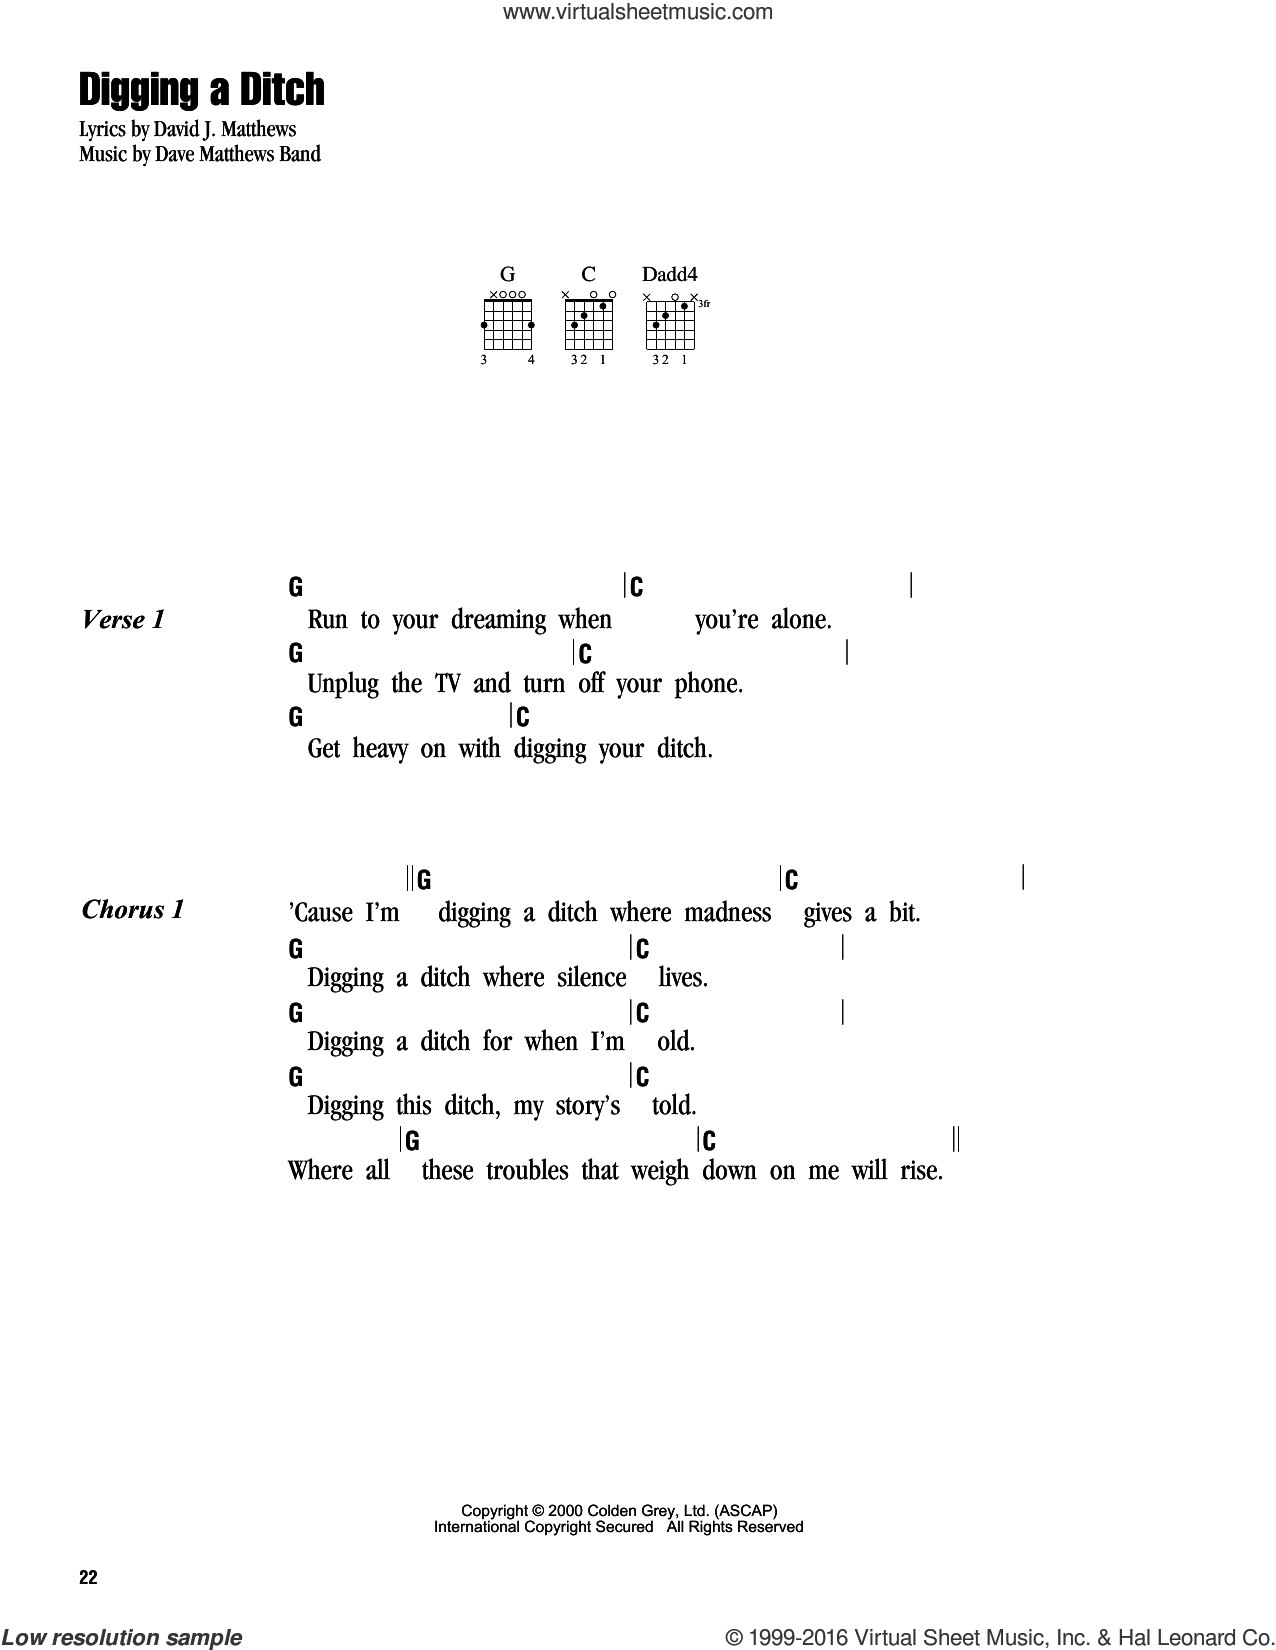 Digging A Ditch sheet music for guitar (chords) by Dave Matthews Band, intermediate skill level